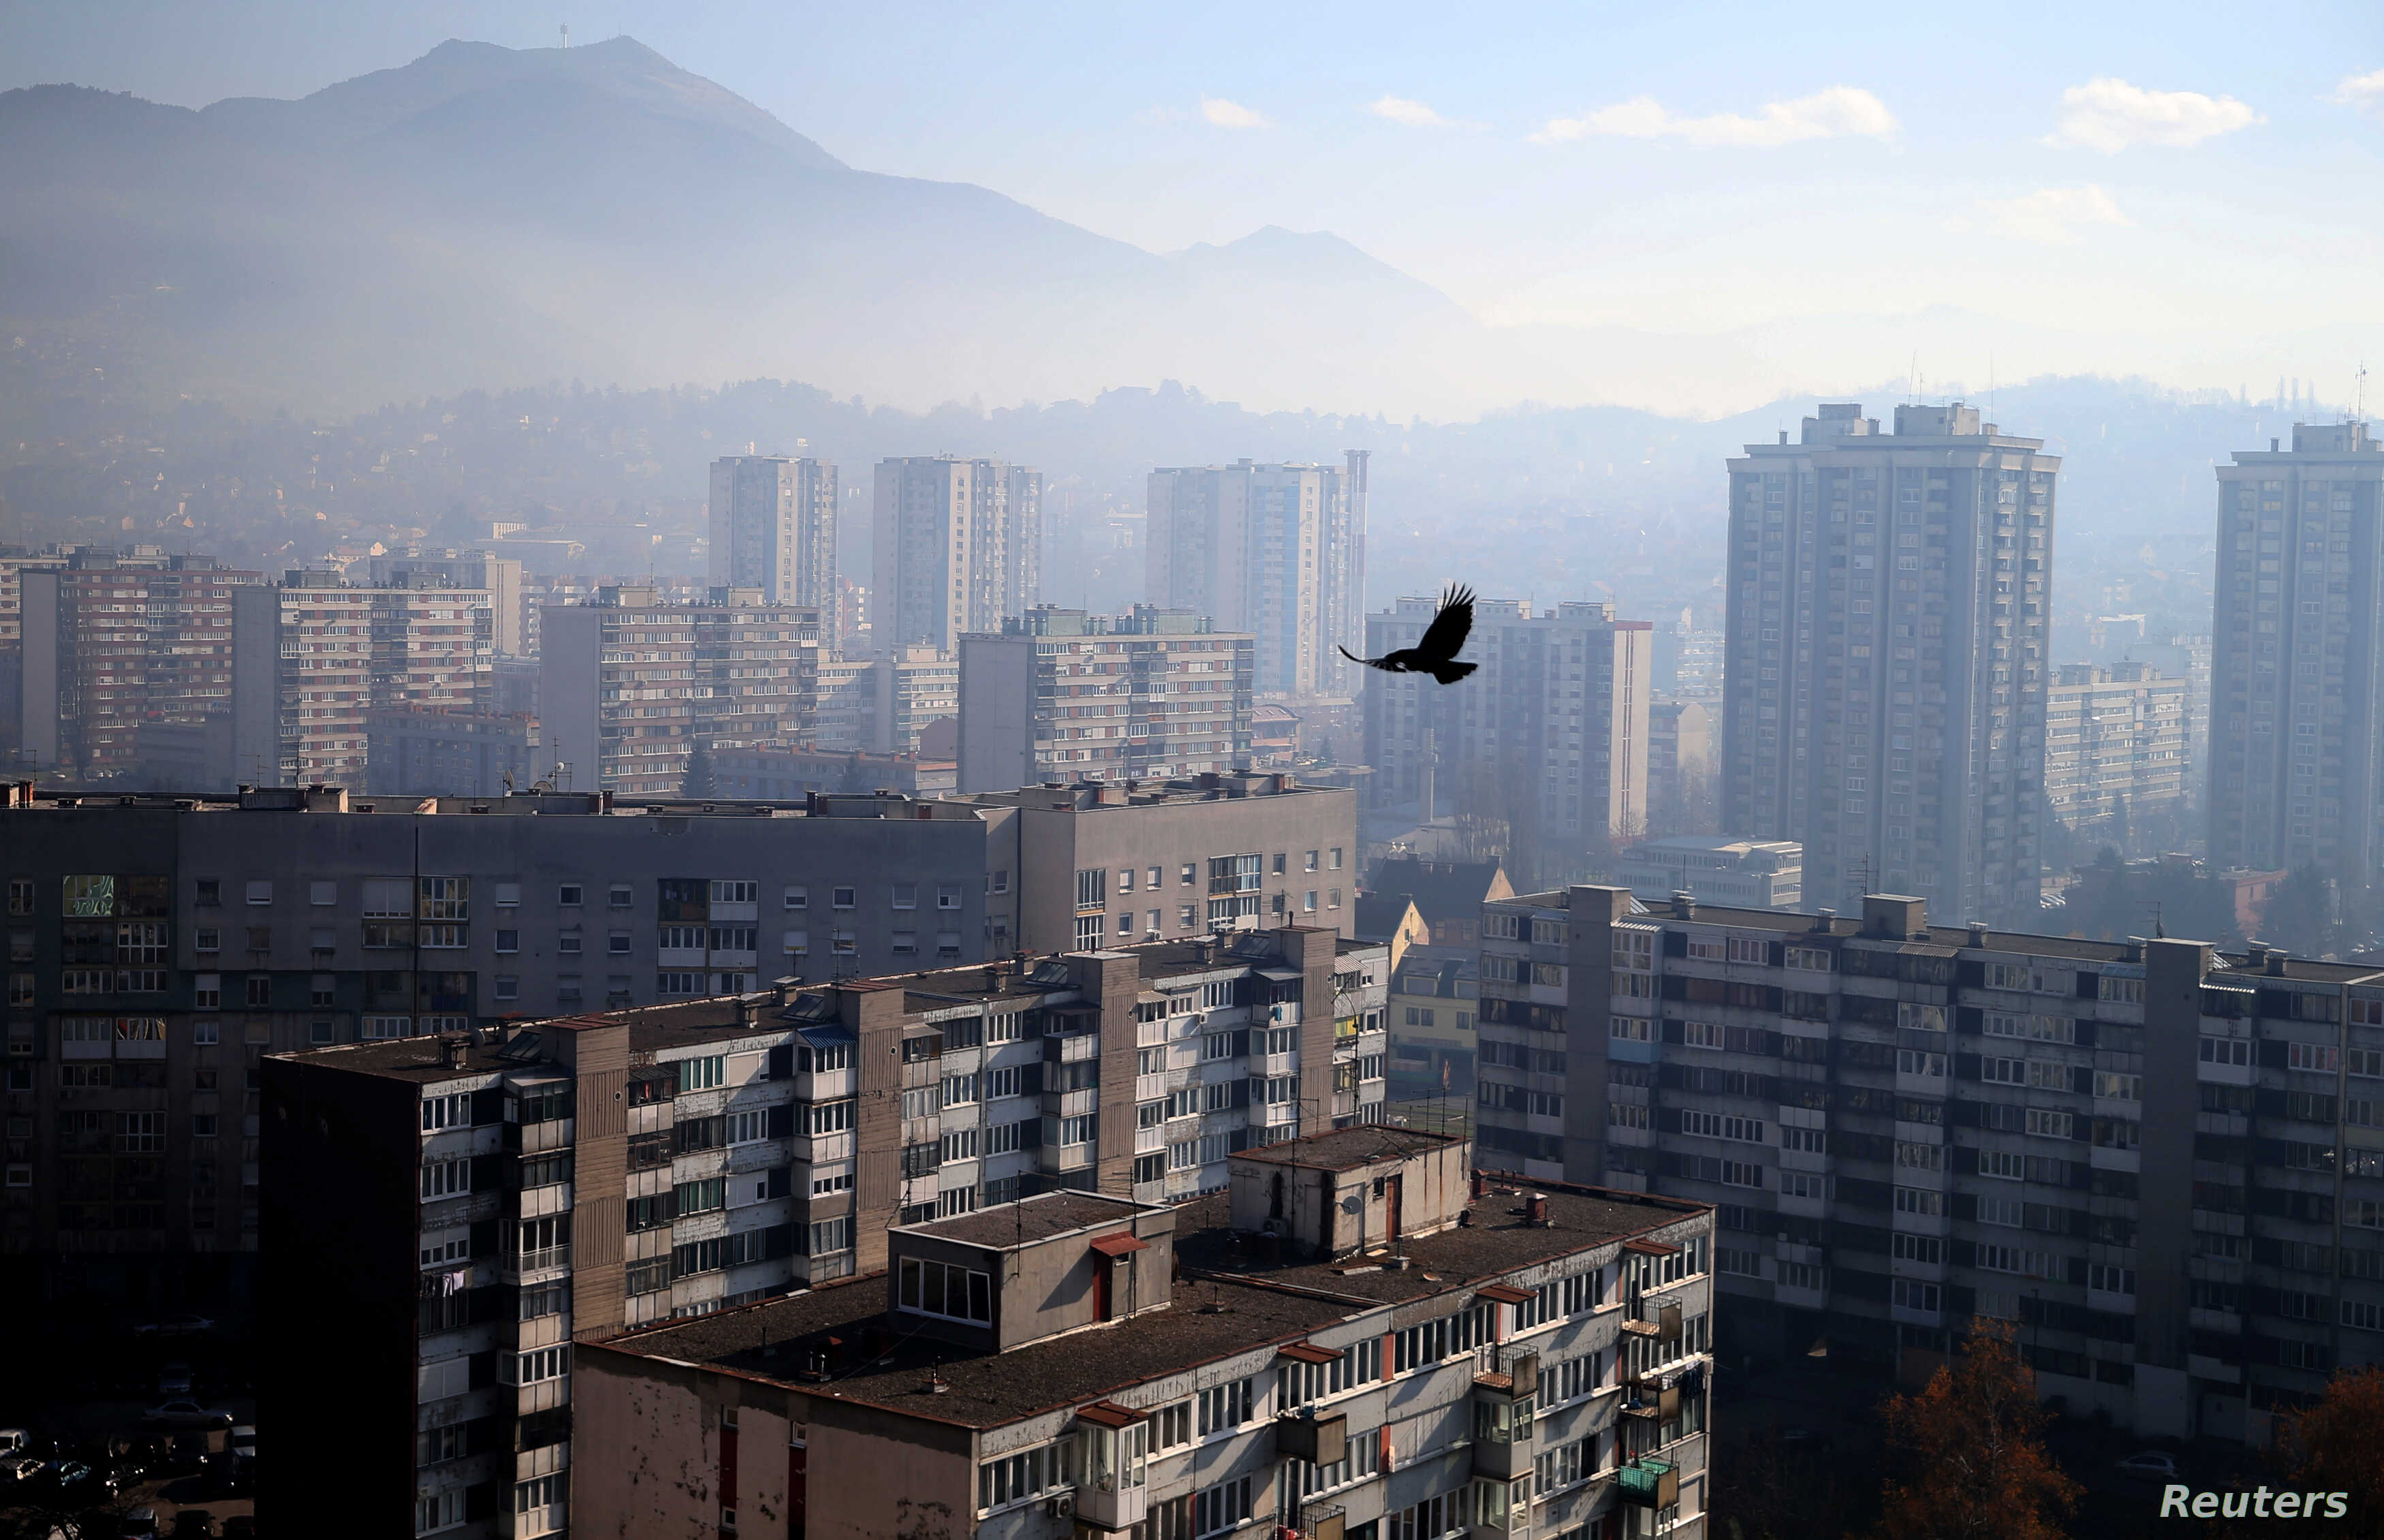 Public Anger as Air Pollution in Western Balkan Cities Worsens